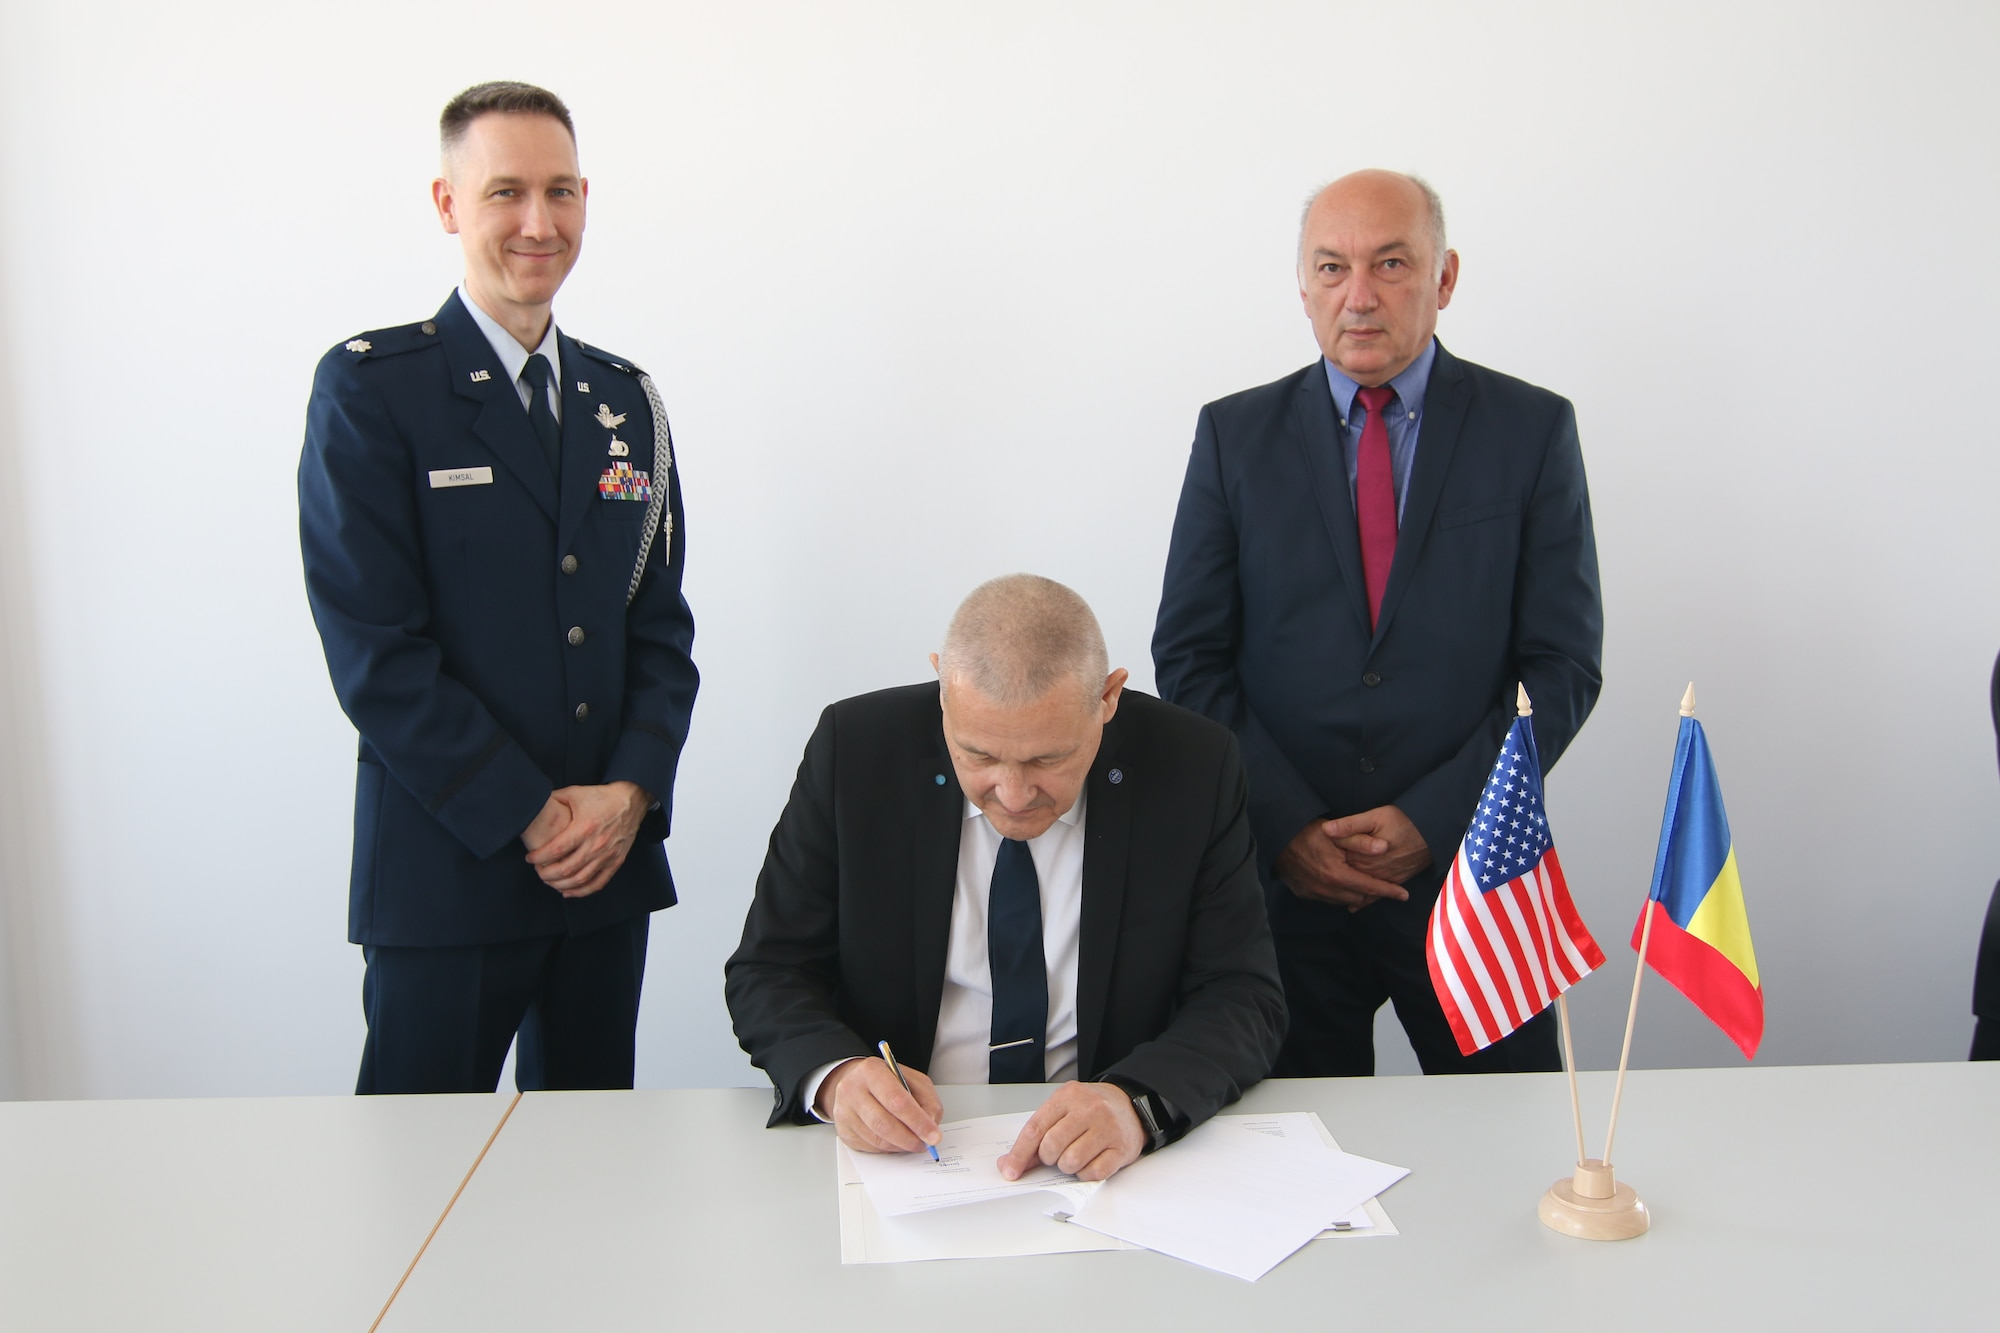 Dr. Phys. Marius-Ion Piso (center), President of Romanian Space Agency (ROSA), signs the United States-Romania Space Situational Awareness (SSA) agreement alongside Lt. Col. Matthew Kimsal (left), representative of the U.S. Embassy in Romania, and Mircea Cernat, Senior Engineer of ROSA, at ROSA headquarter in Bucharest, Romania, on April 25, 2019. The U.S. government partners with space-faring entities to promote the responsible, peaceful and safe use of space. SSA sharing agreements lay the foundation that allows USSTRATCOM to share information with allies and partners in support of launches, on-orbit maneuvers, anomaly resolution, de-commissioning activities and on-orbit conjunction assessments. SSA sharing is a foundational capability that affects all future space operations and projects.